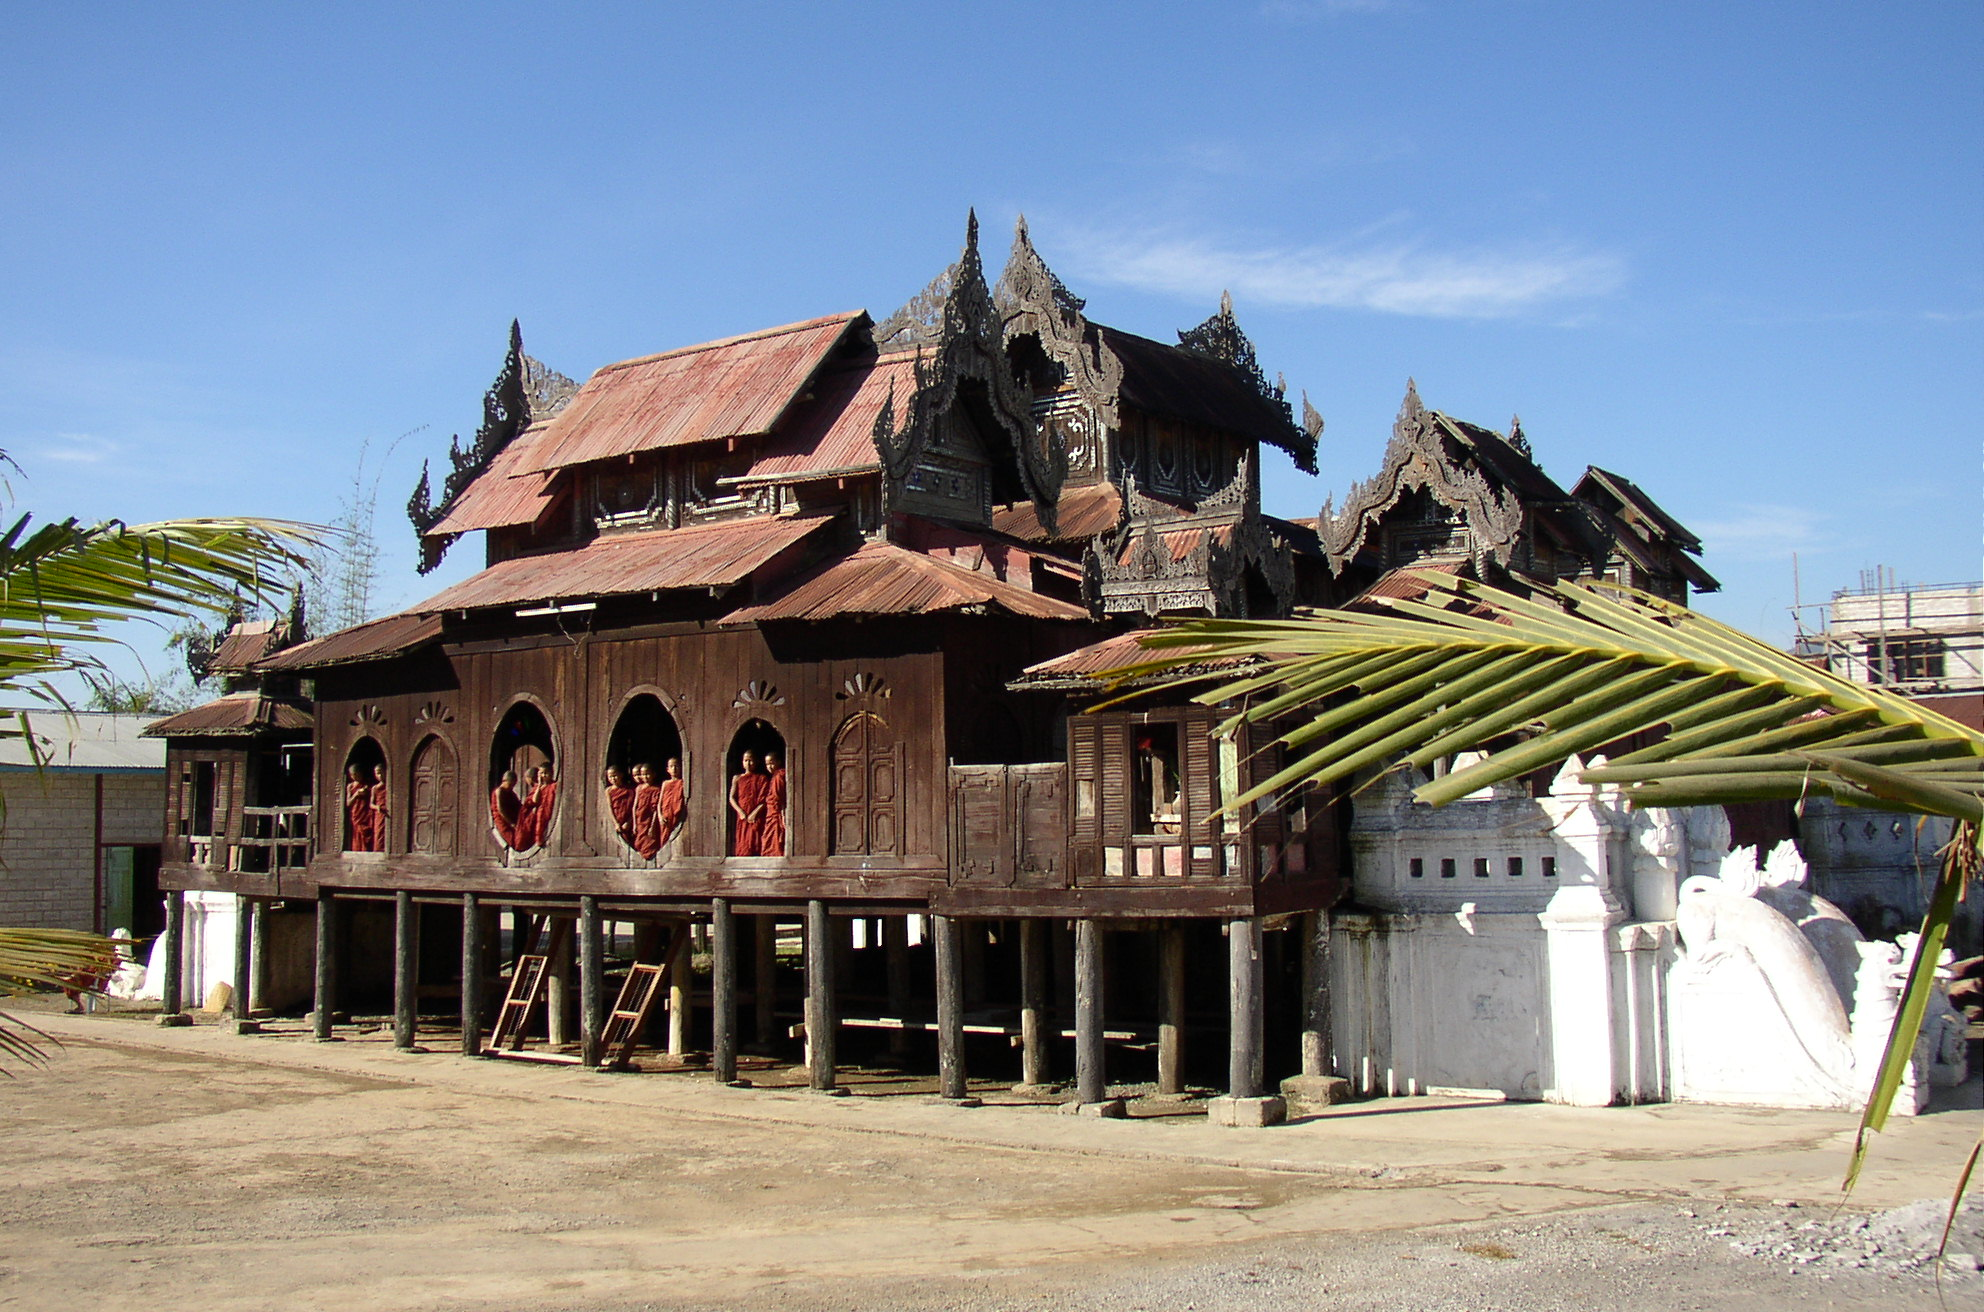 Pyay Myanmar  City pictures : Original file  1,984 × 1,312 pixels, file size: 625 KB, MIME type ...